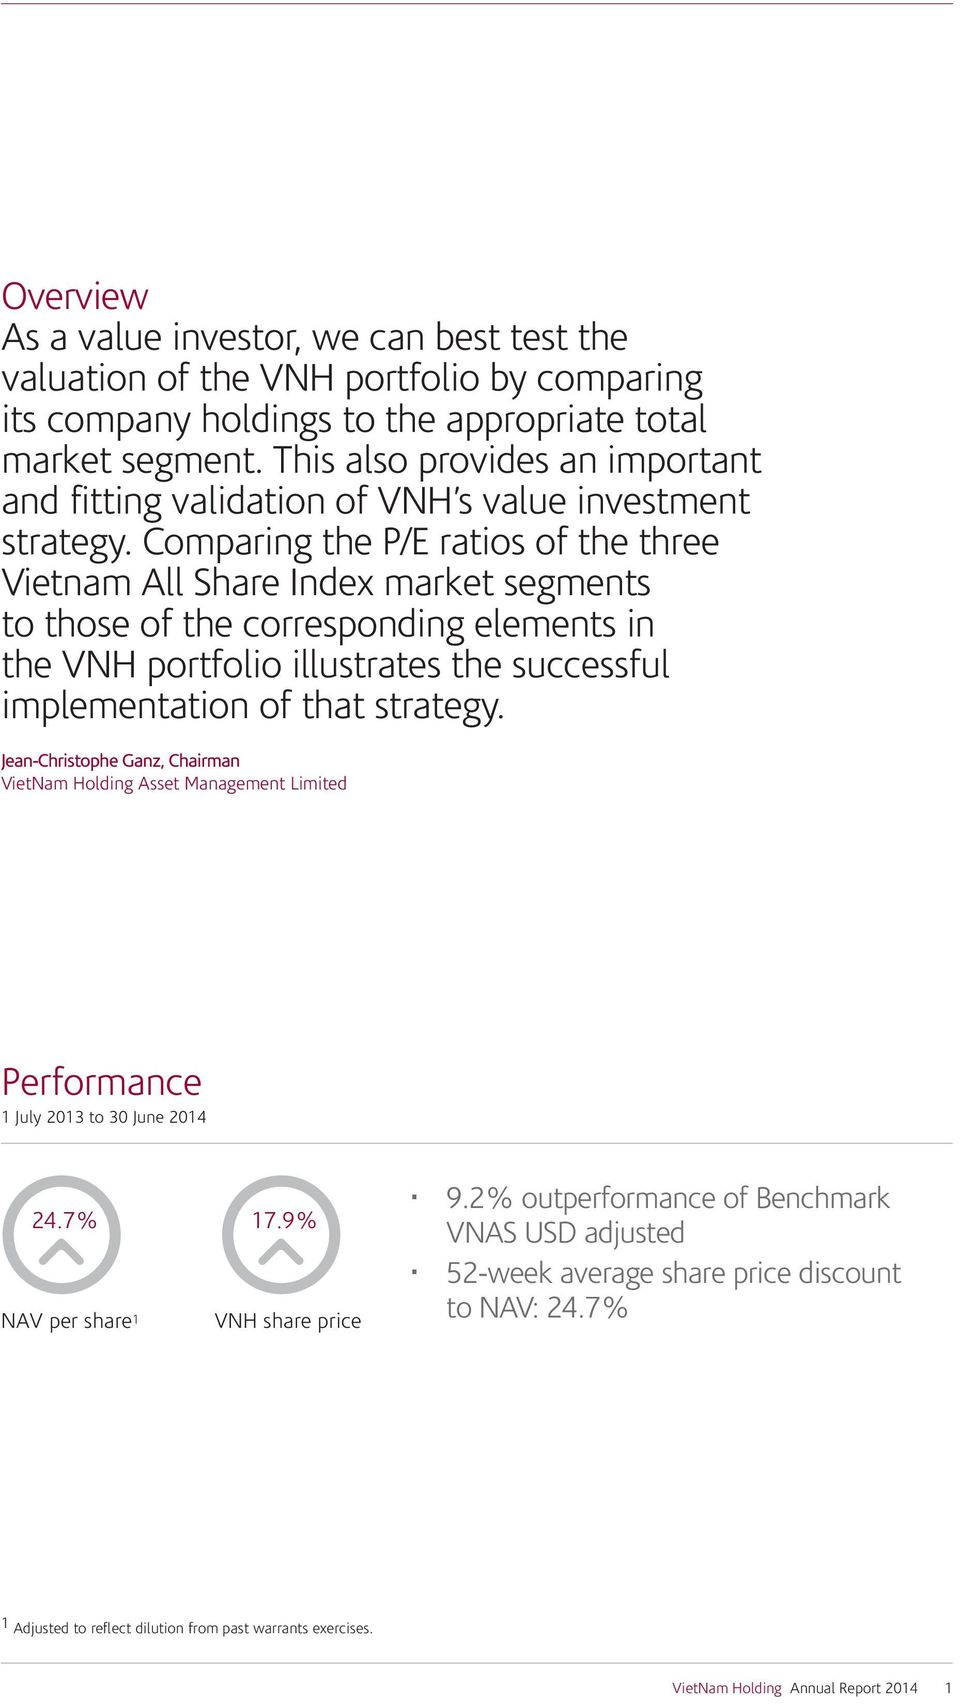 Comparing the P/E ratios of the three Vietnam All Share Index market segments to those of the corresponding elements in the VNH portfolio illustrates the successful implementation of that strategy.